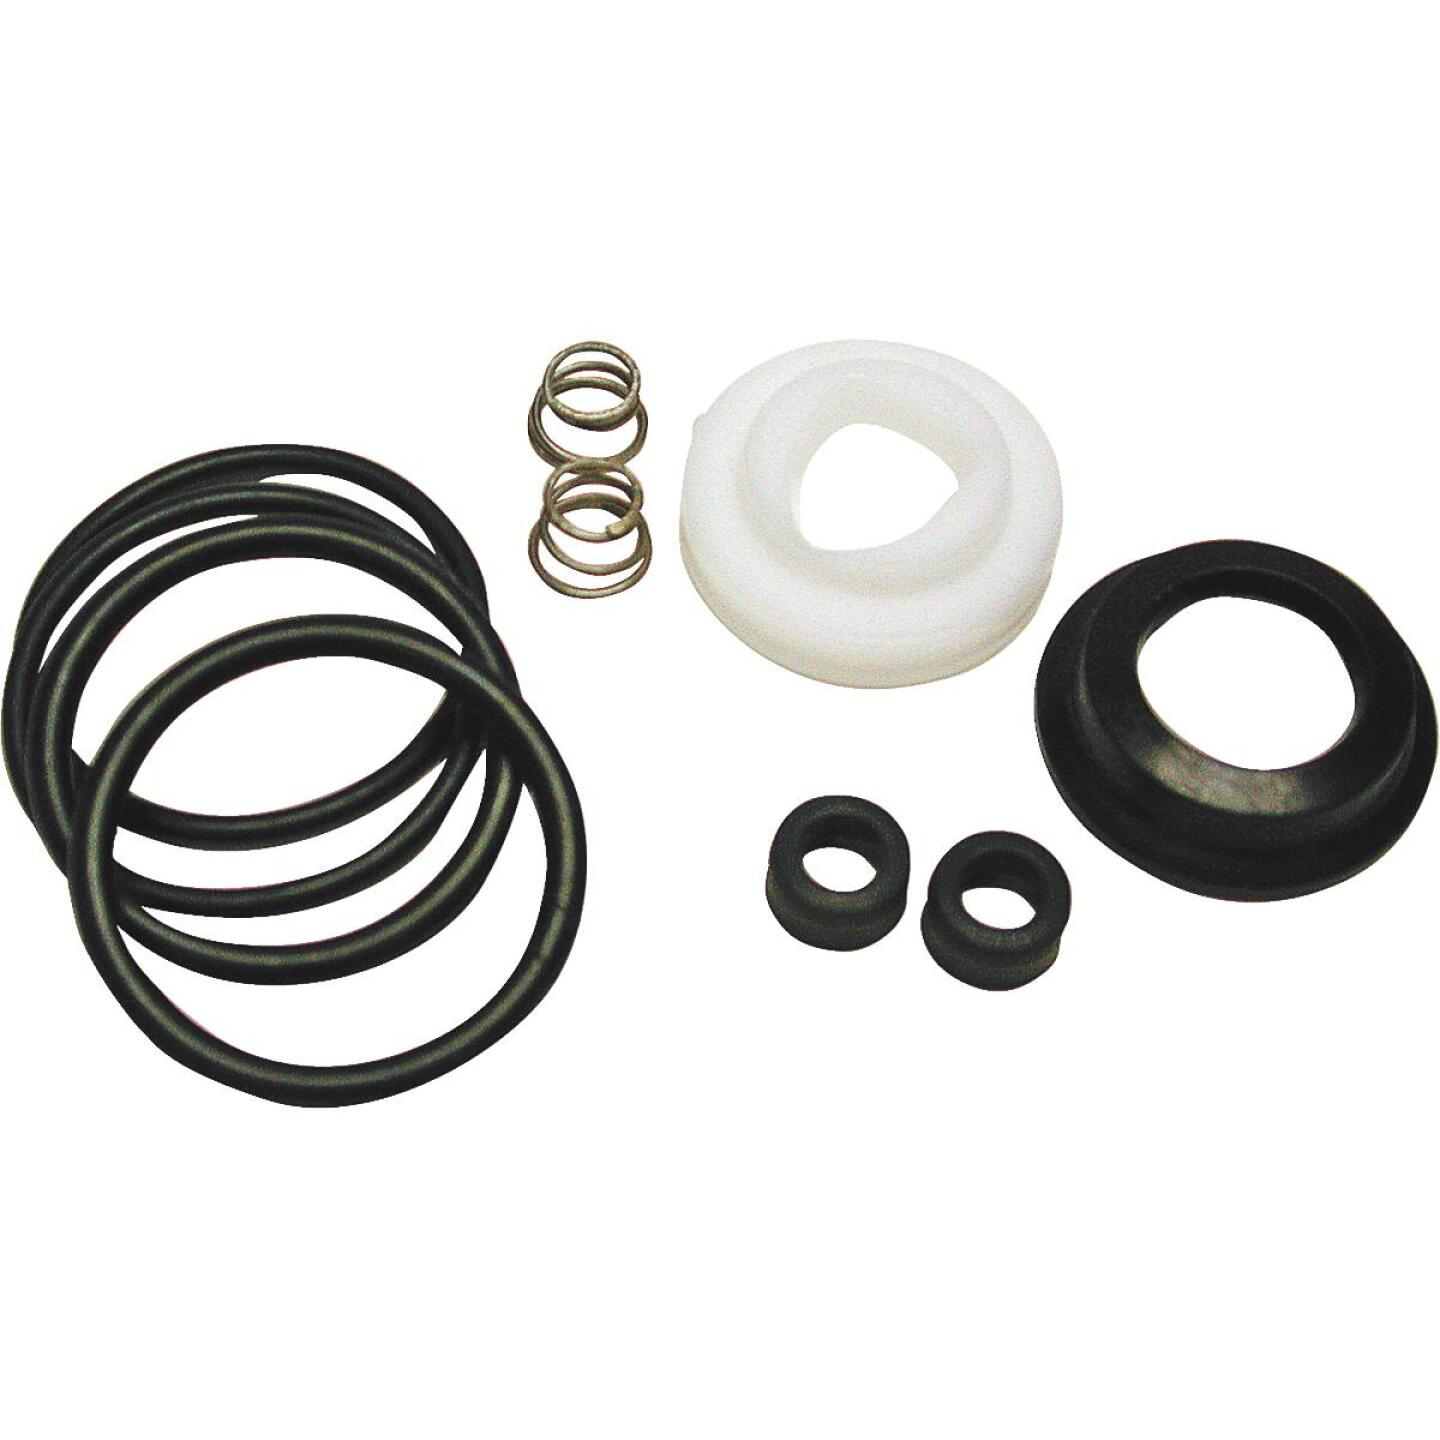 Delta Single Control Faucet Repair Kit Image 1